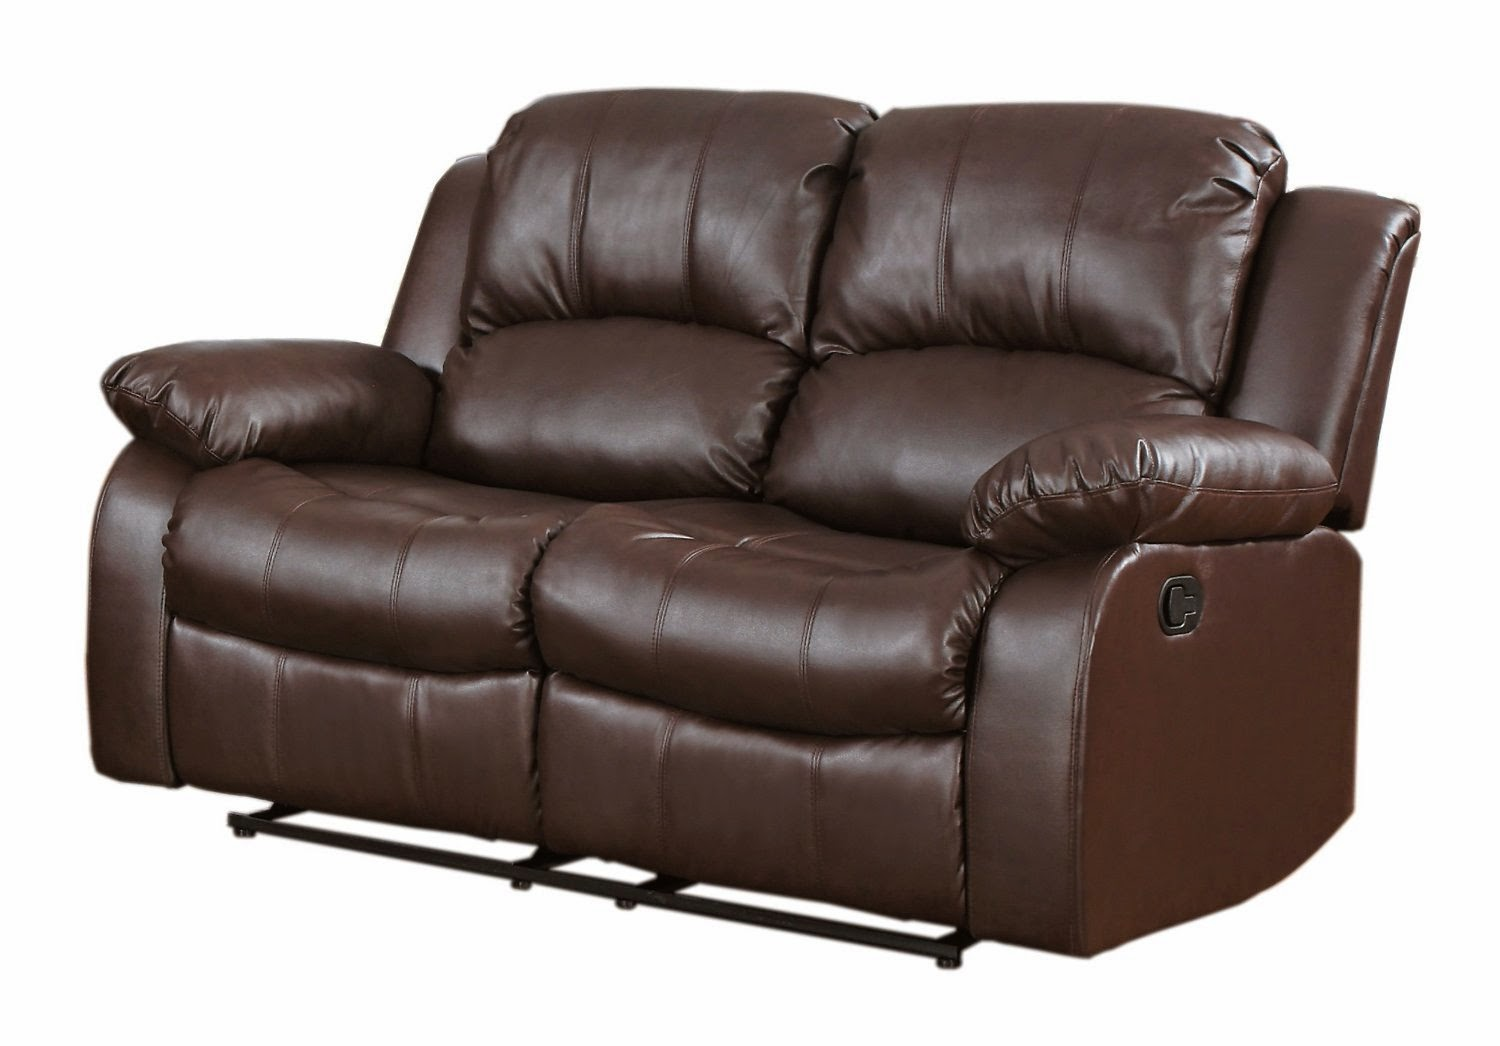 Cheap Recliner Sofas For Sale Brown Reclining Sofa And